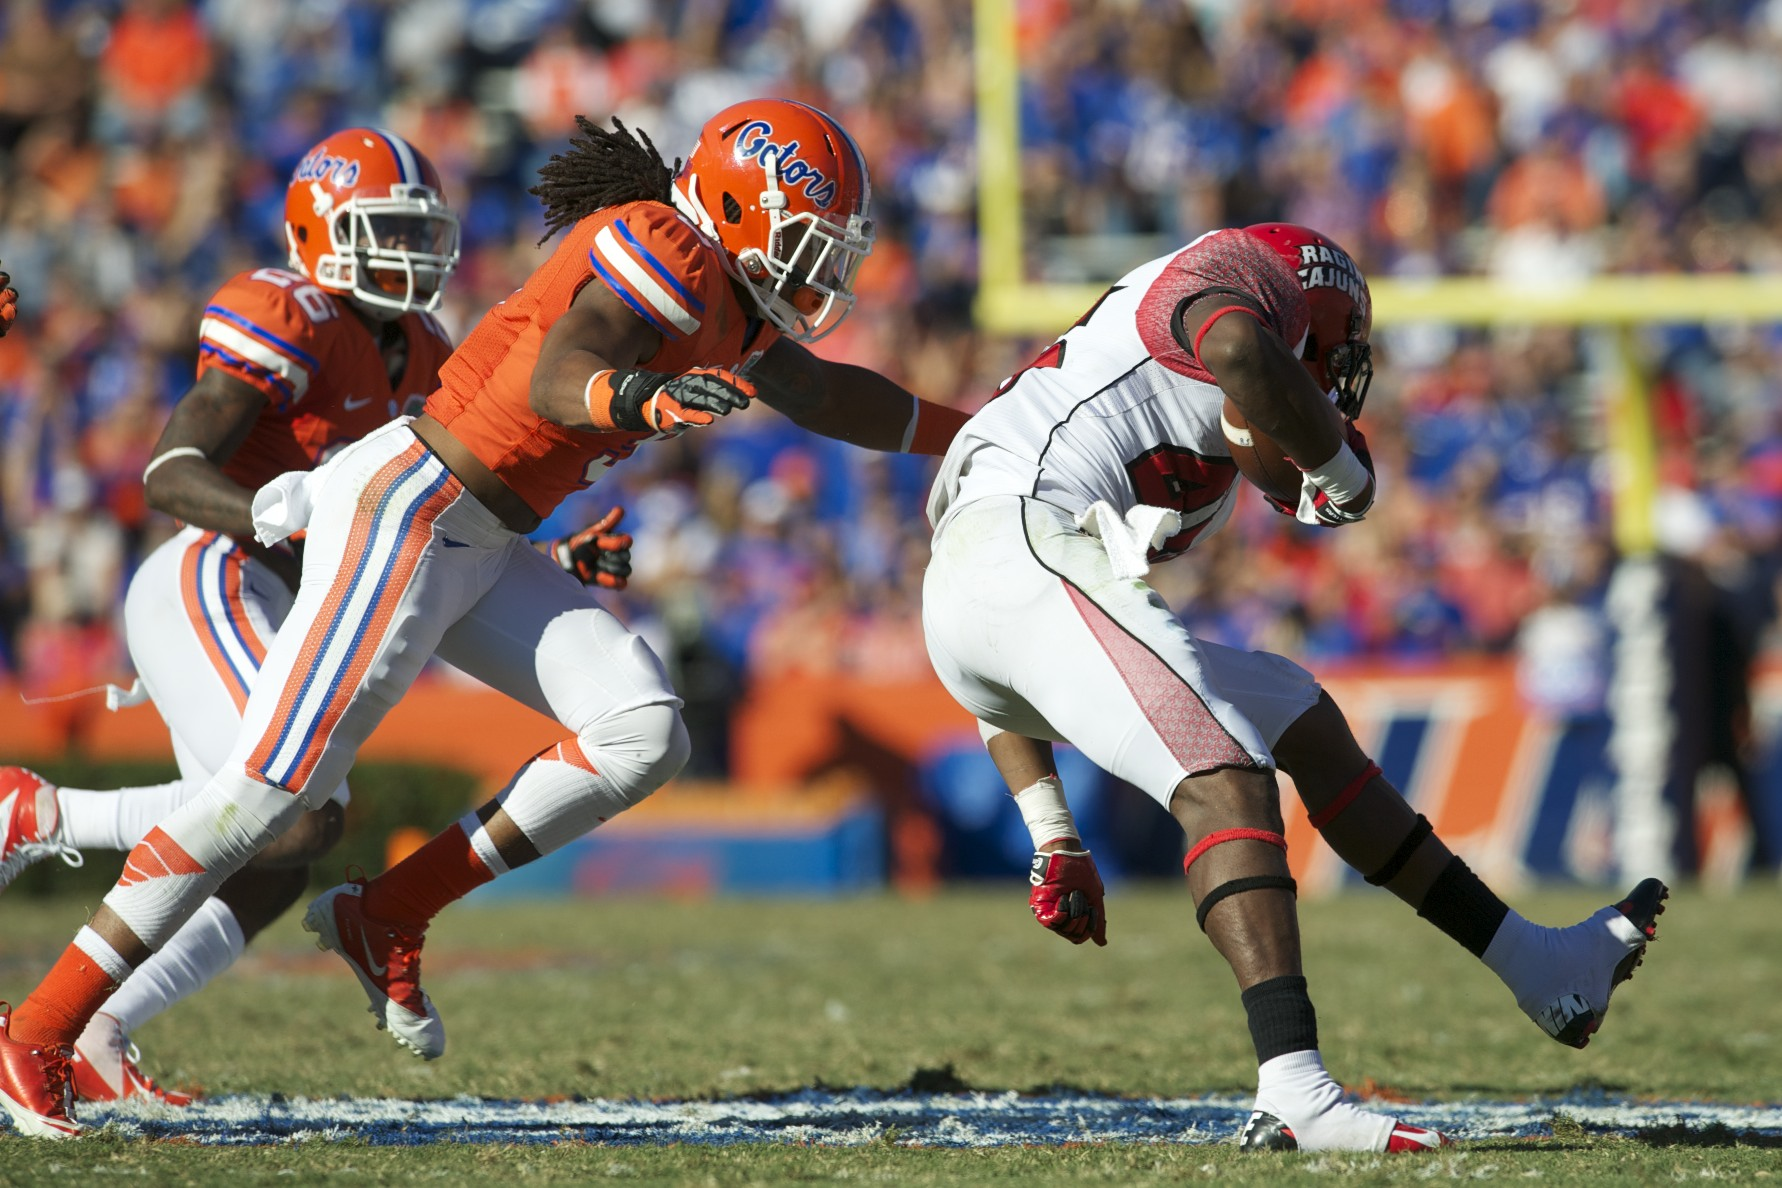 Florida defense takes down ball carrier Alonzo Harris (46) after a Louisiana first down.